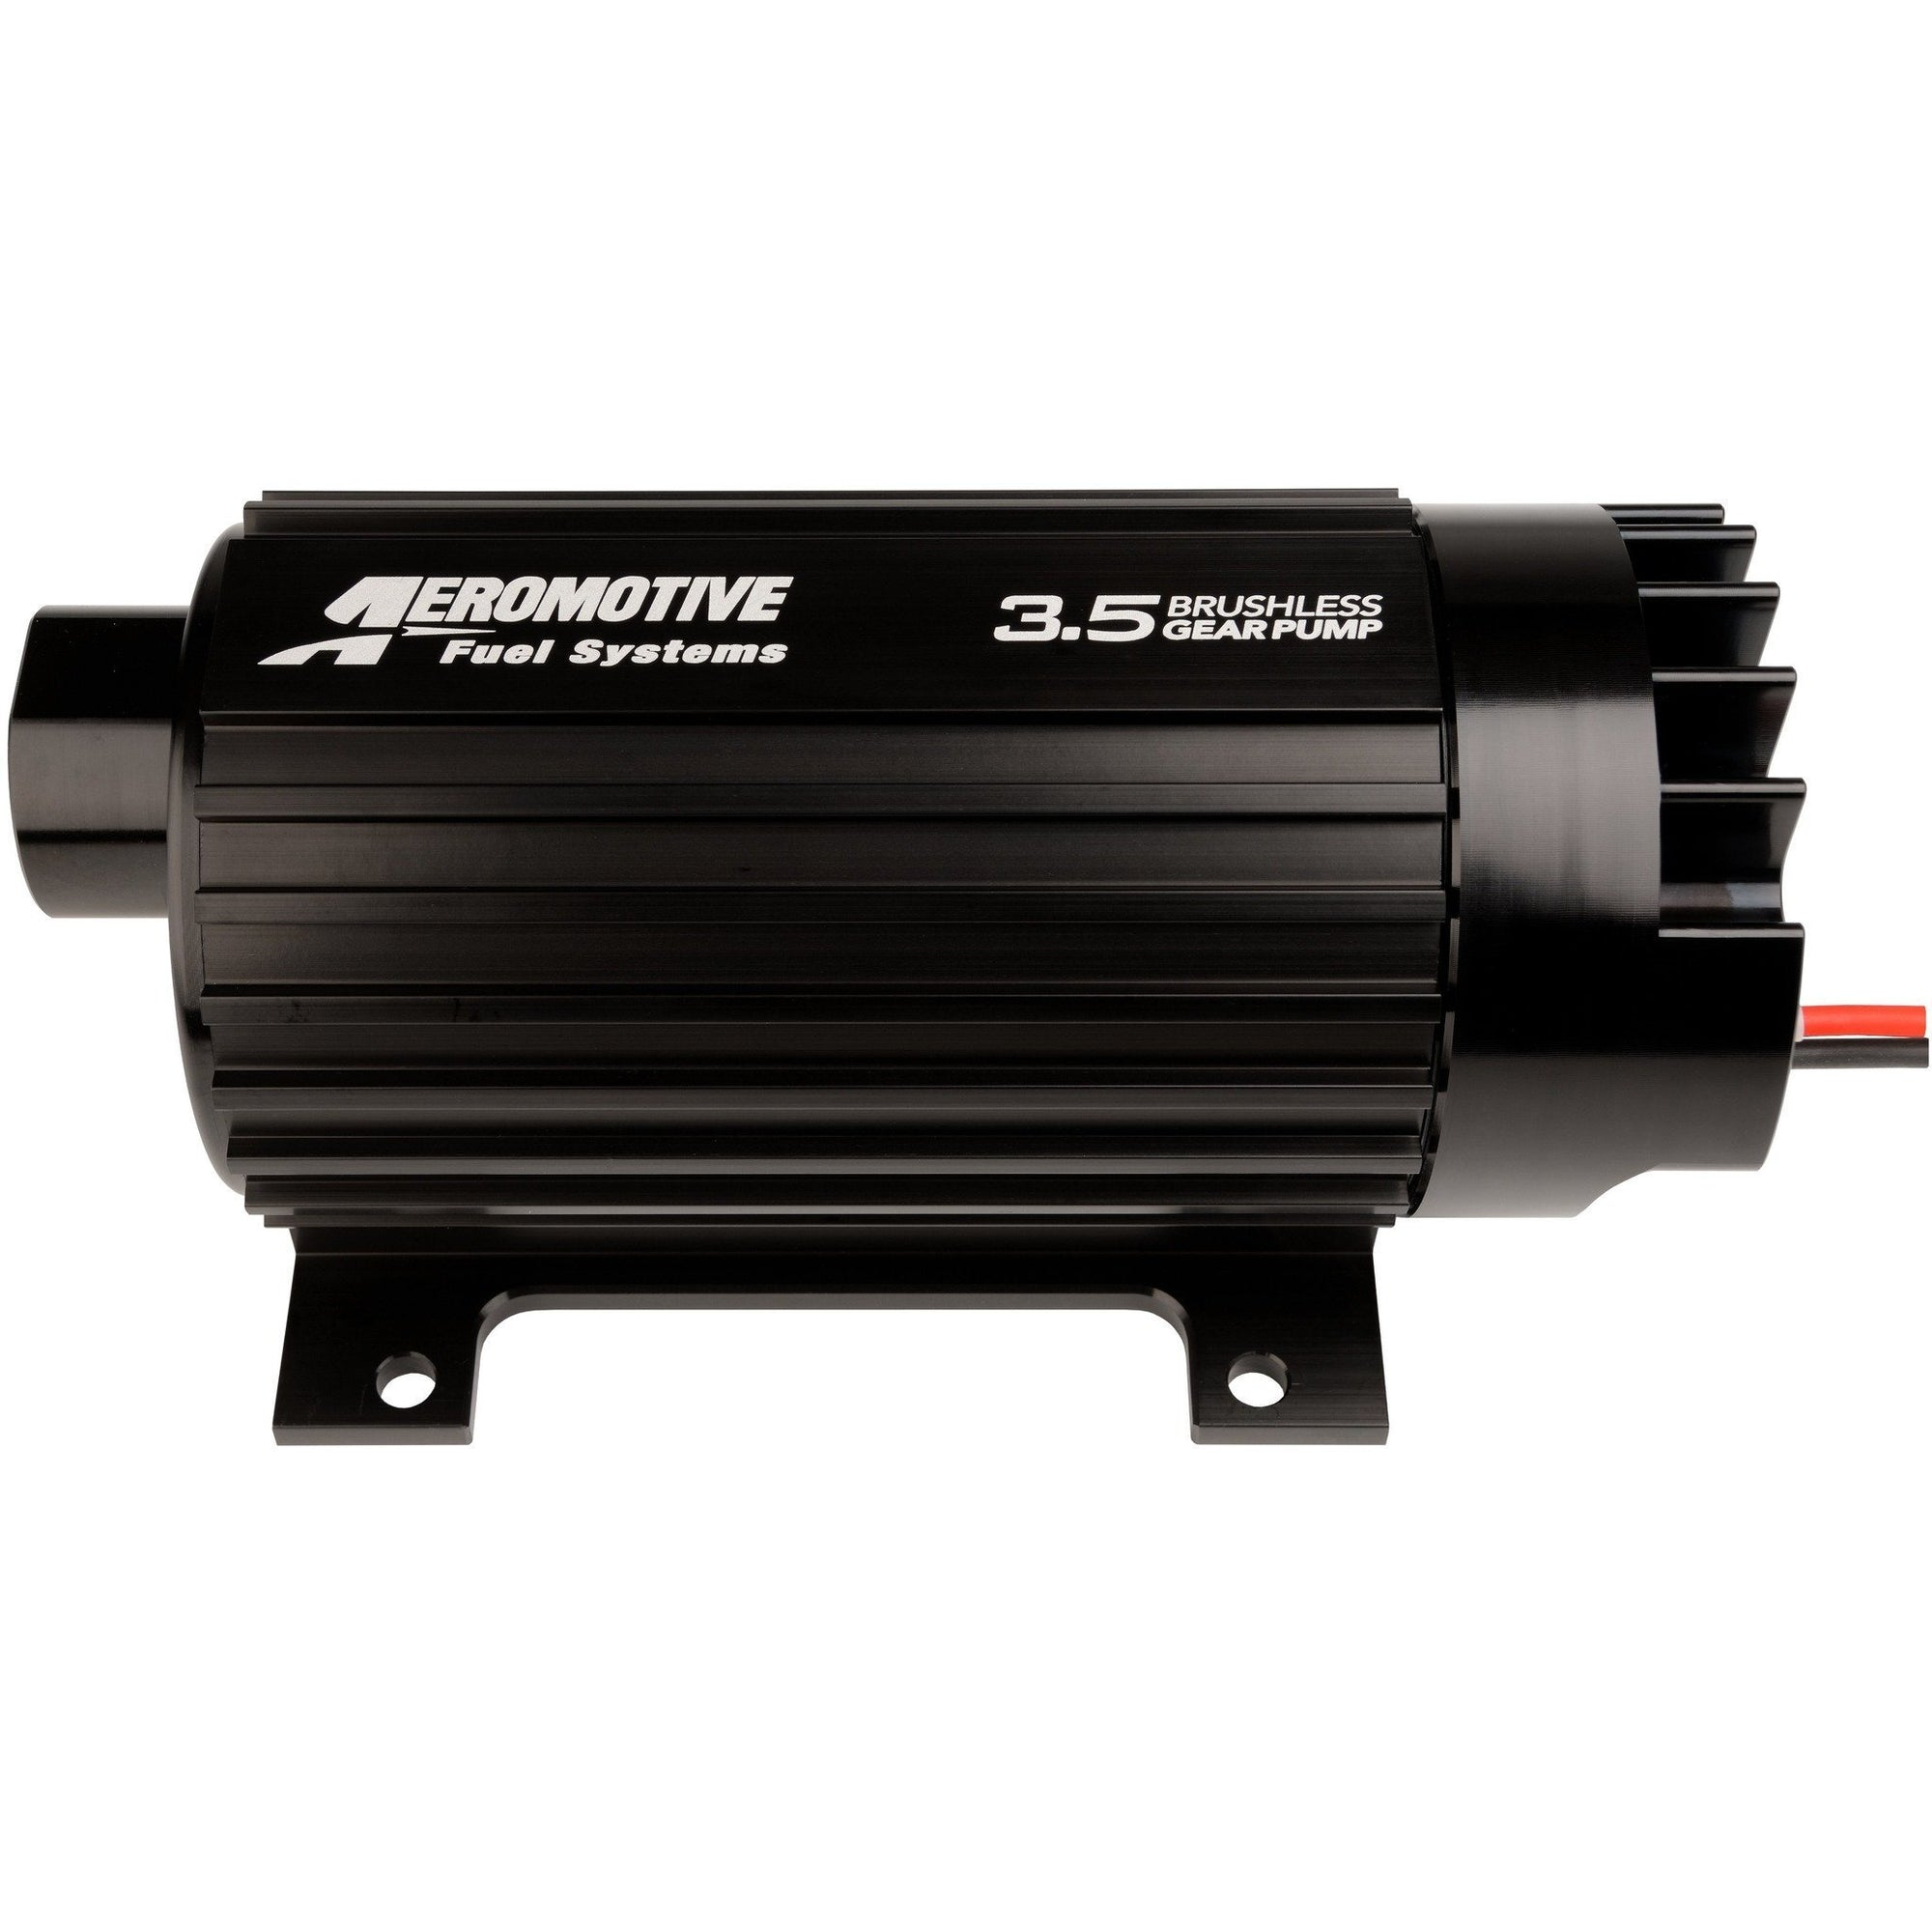 Aeromotive Brushless Gear 3.5 GPM Fuel Pump, w/Feet 11185-Aeromotive-Motion Raceworks